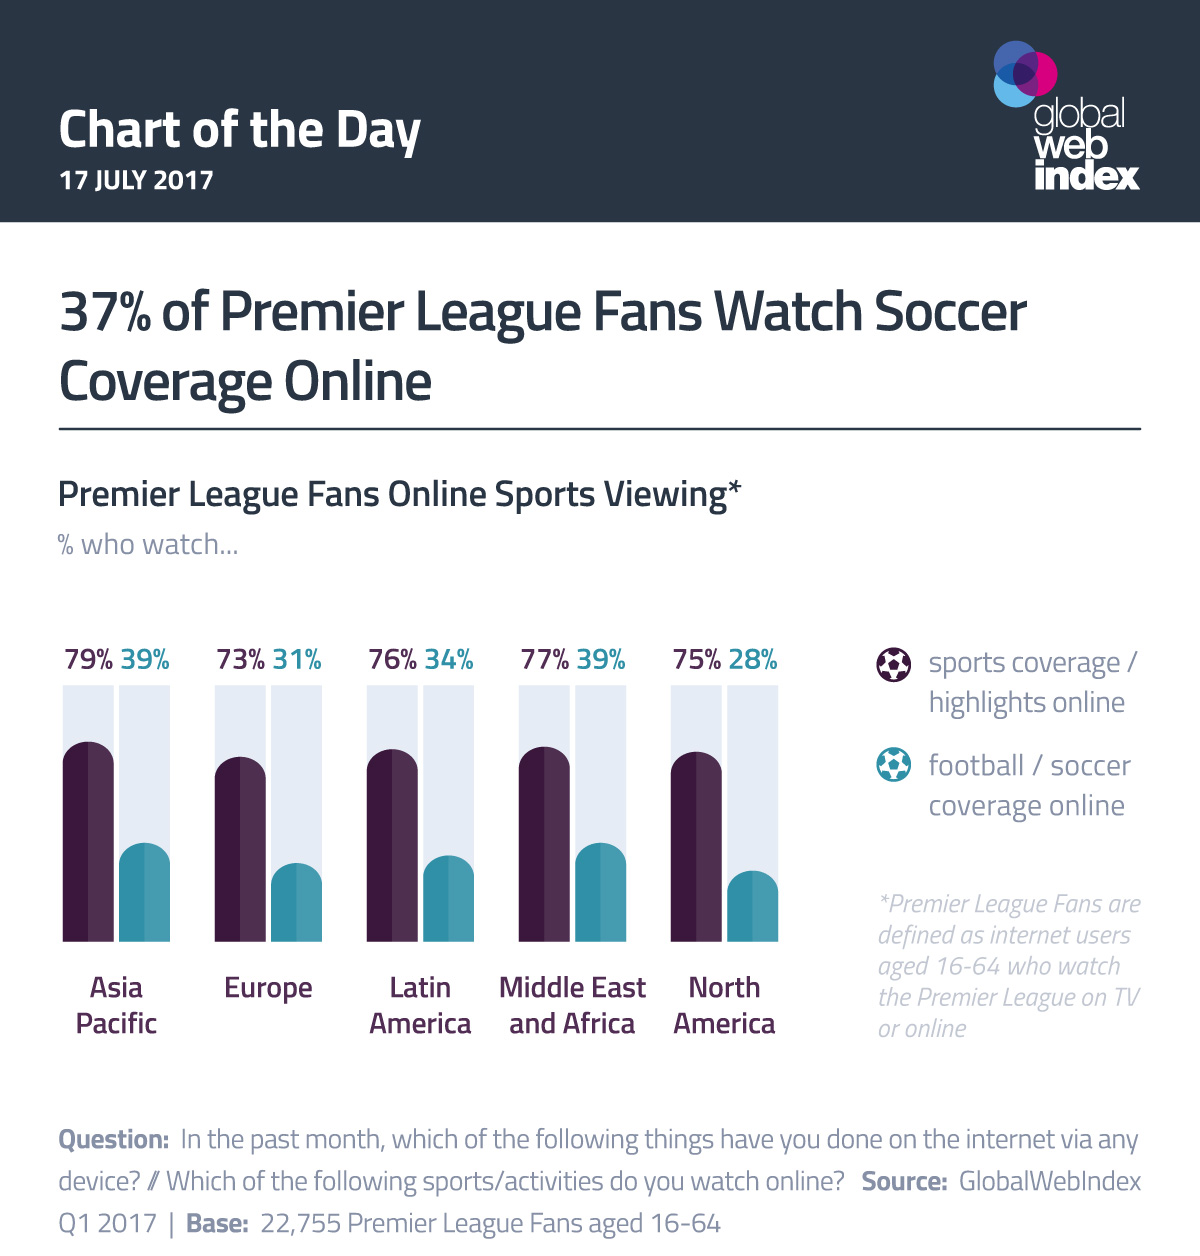 37% of Premier League Fans Watch Soccer Coverage Online